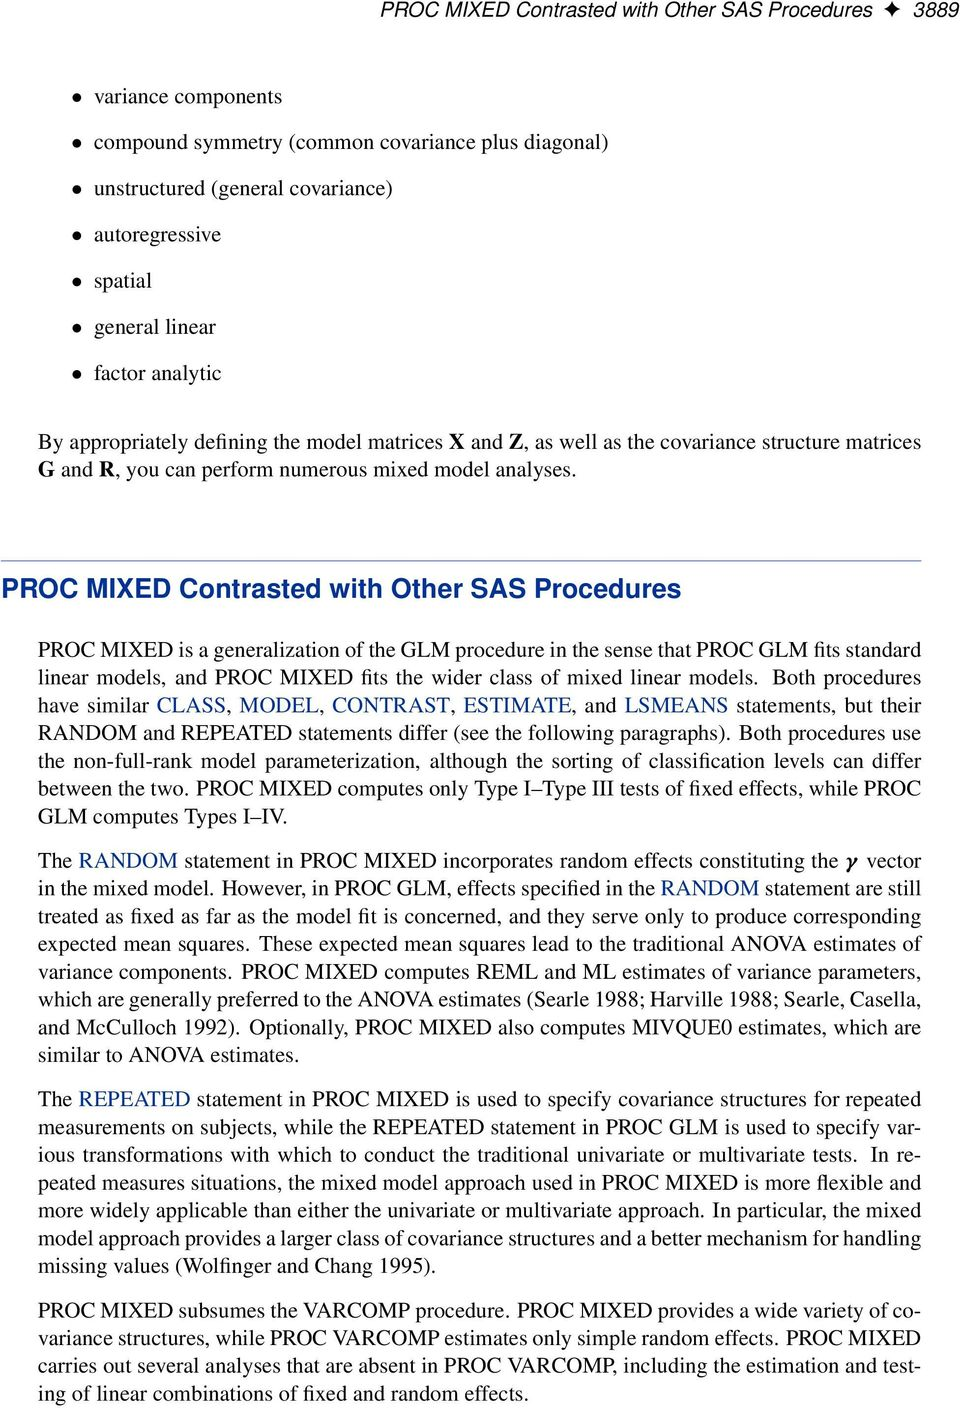 PROC MIXED Contrasted with Other SAS Procedures PROC MIXED is a generalization of the GLM procedure in the sense that PROC GLM fits standard linear models, and PROC MIXED fits the wider class of